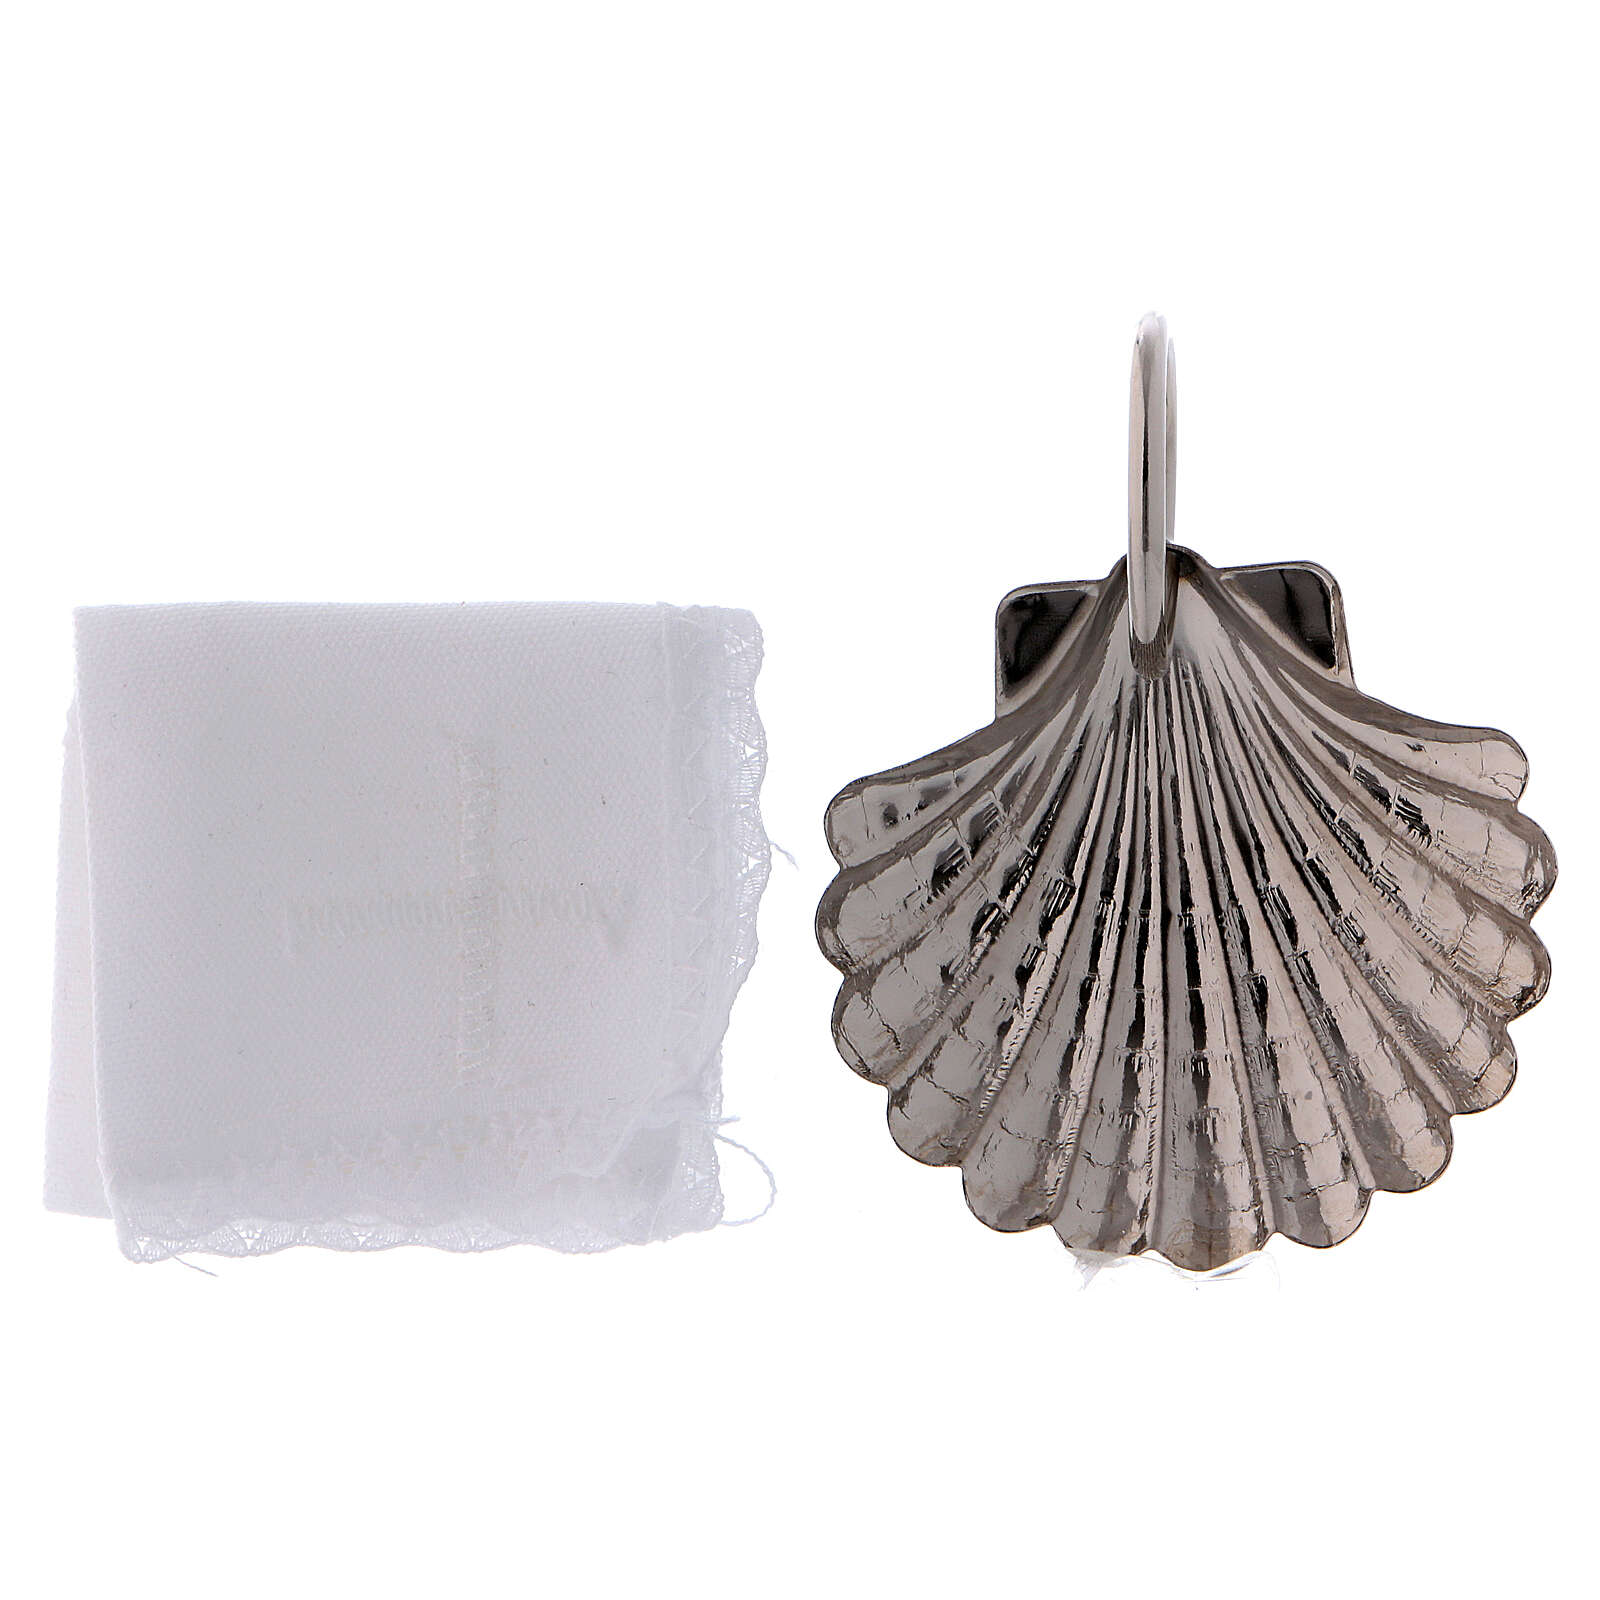 Baptismal set with silver-plated magnetic tray 3